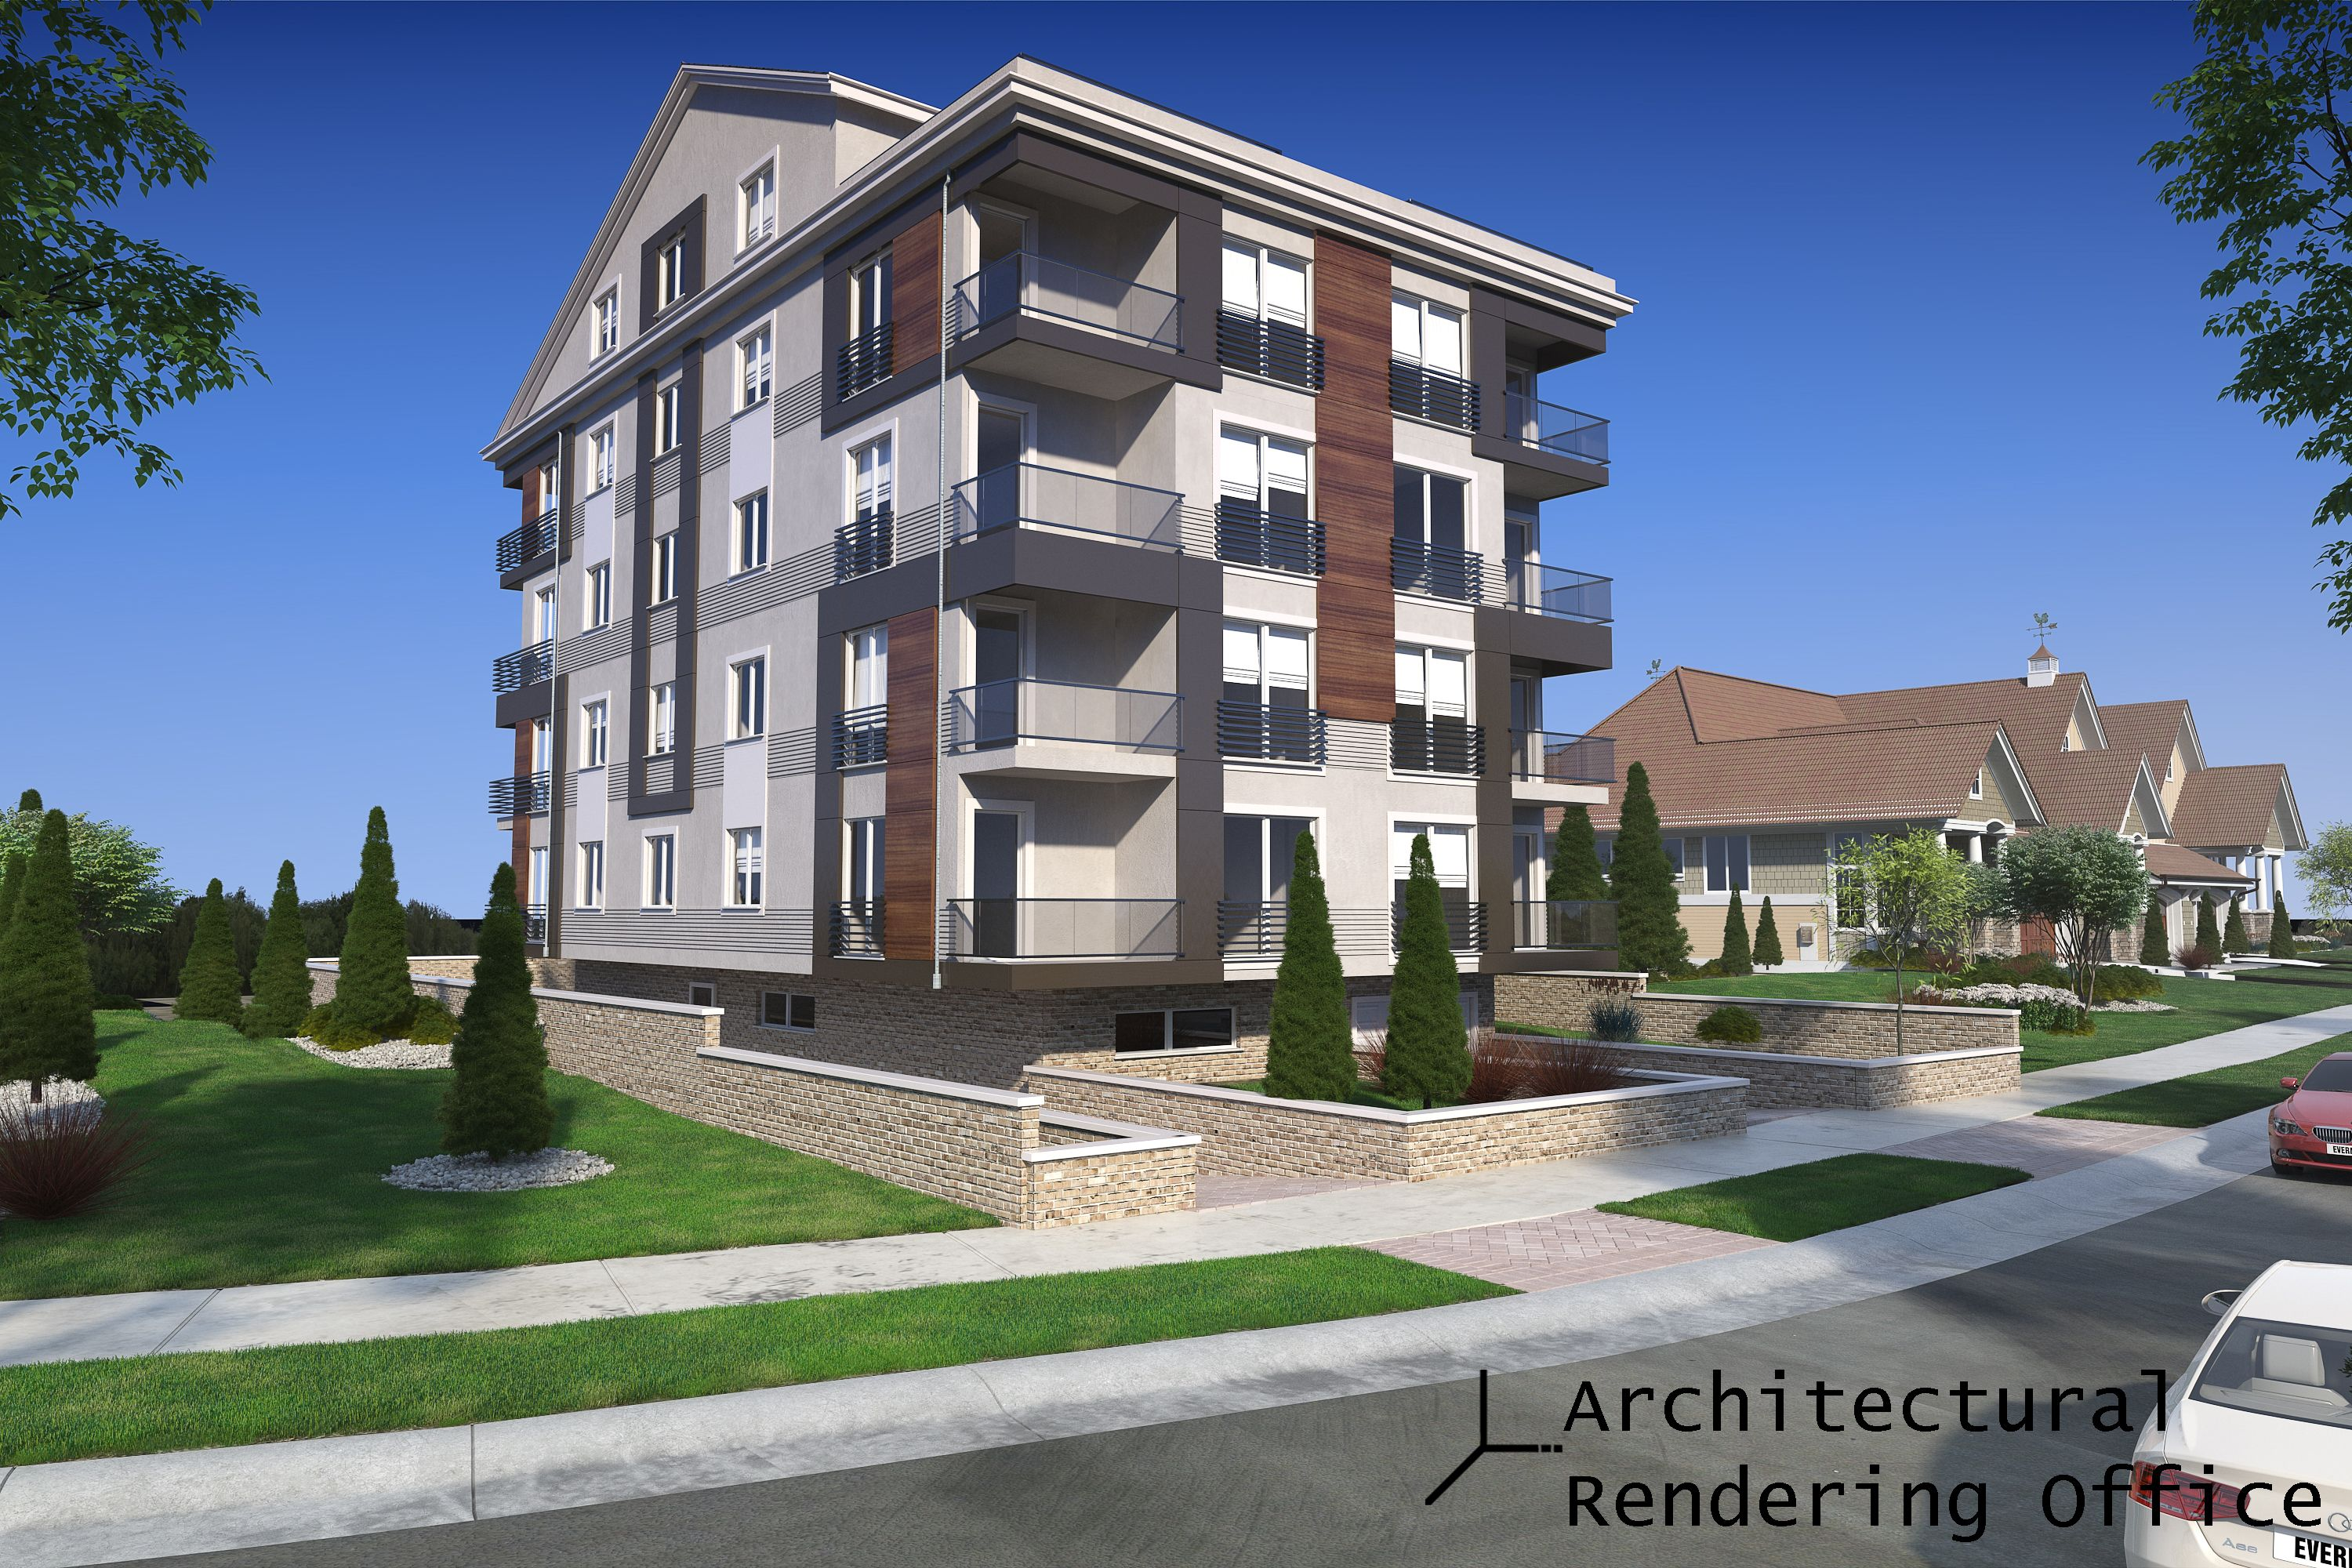 ARCHITECTURAL RENDERING OFFICE HAS BEEN OFFERING 3D